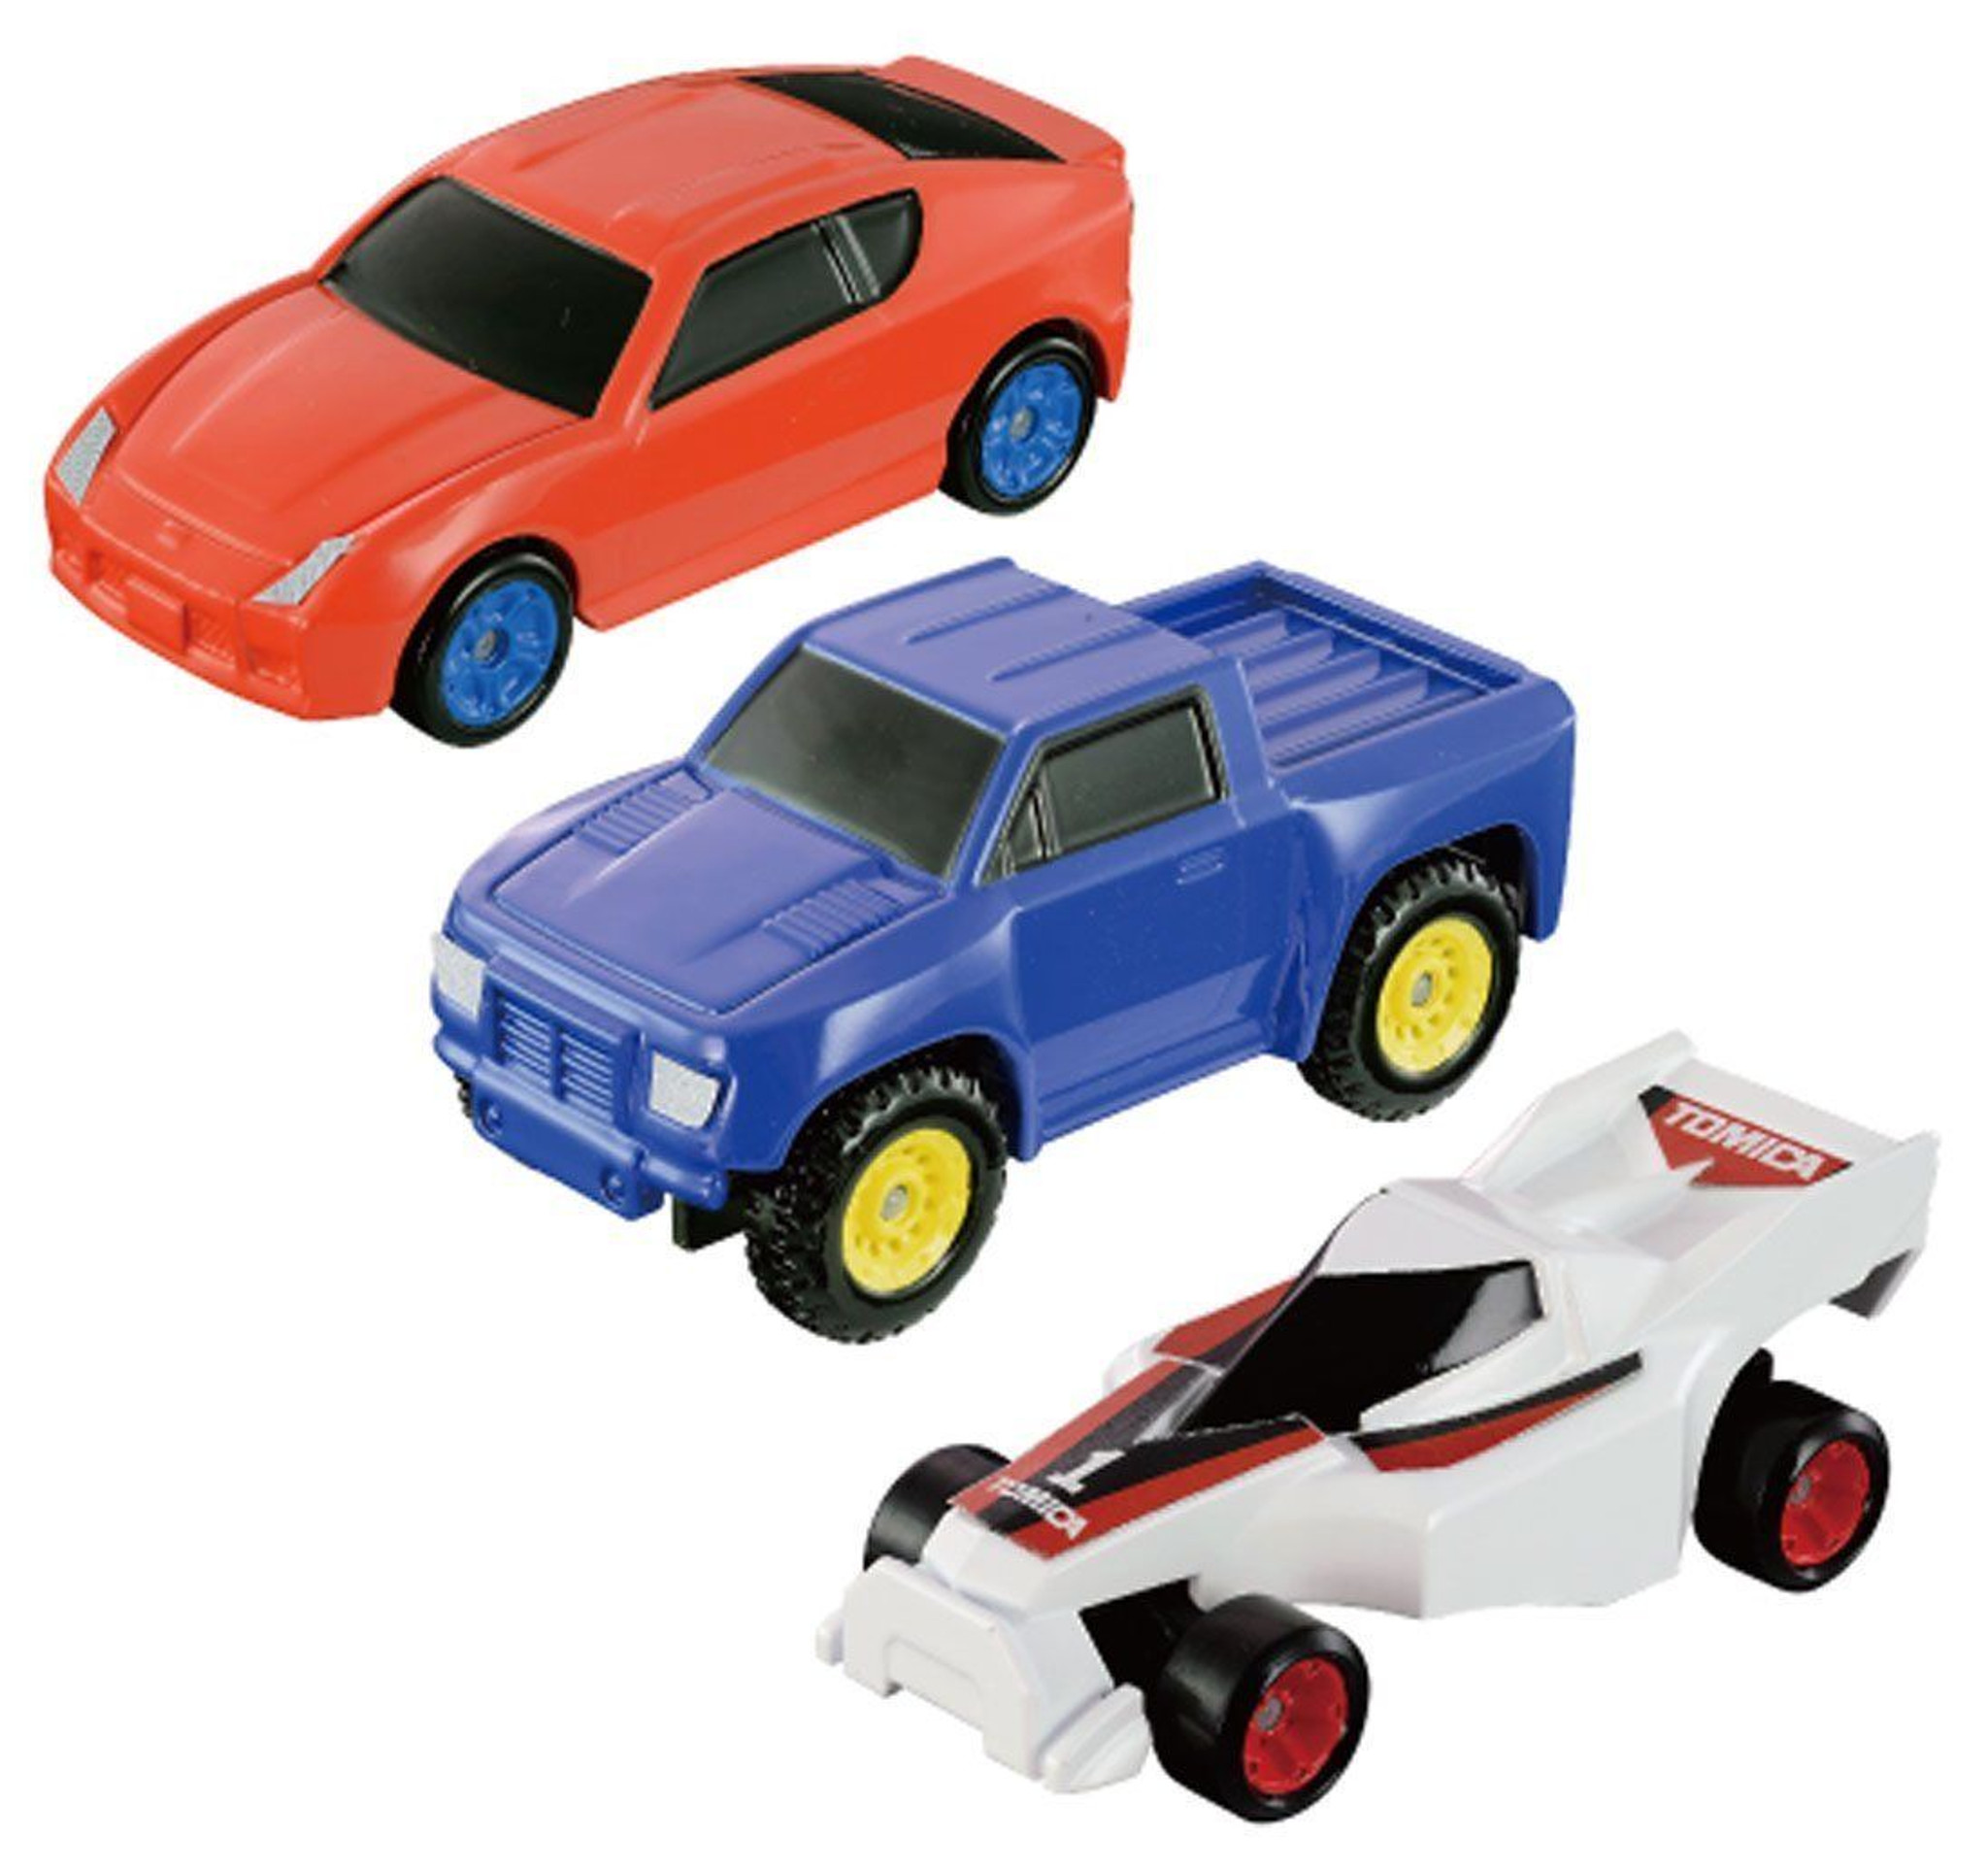 Tomy 837848 Tomica Assembly Machine with 3 cars - Plaza Japan